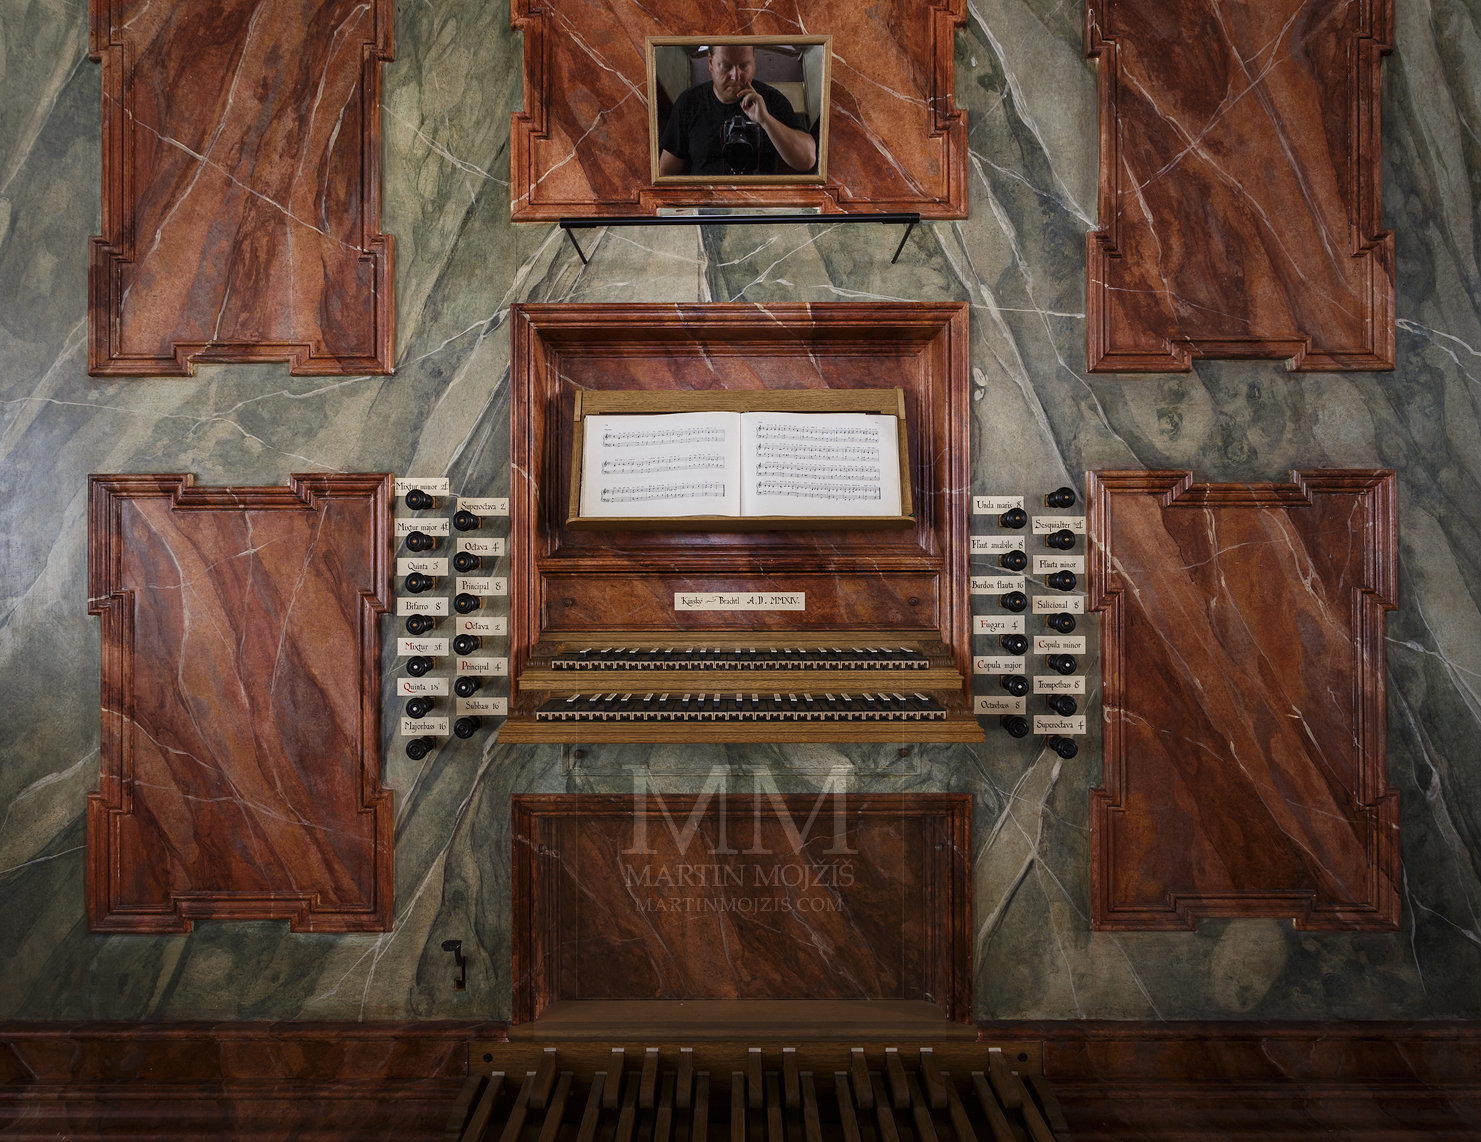 Church of st. Peter and Paul in Melnik. Church organ. Professional photography of architecture - interiors.